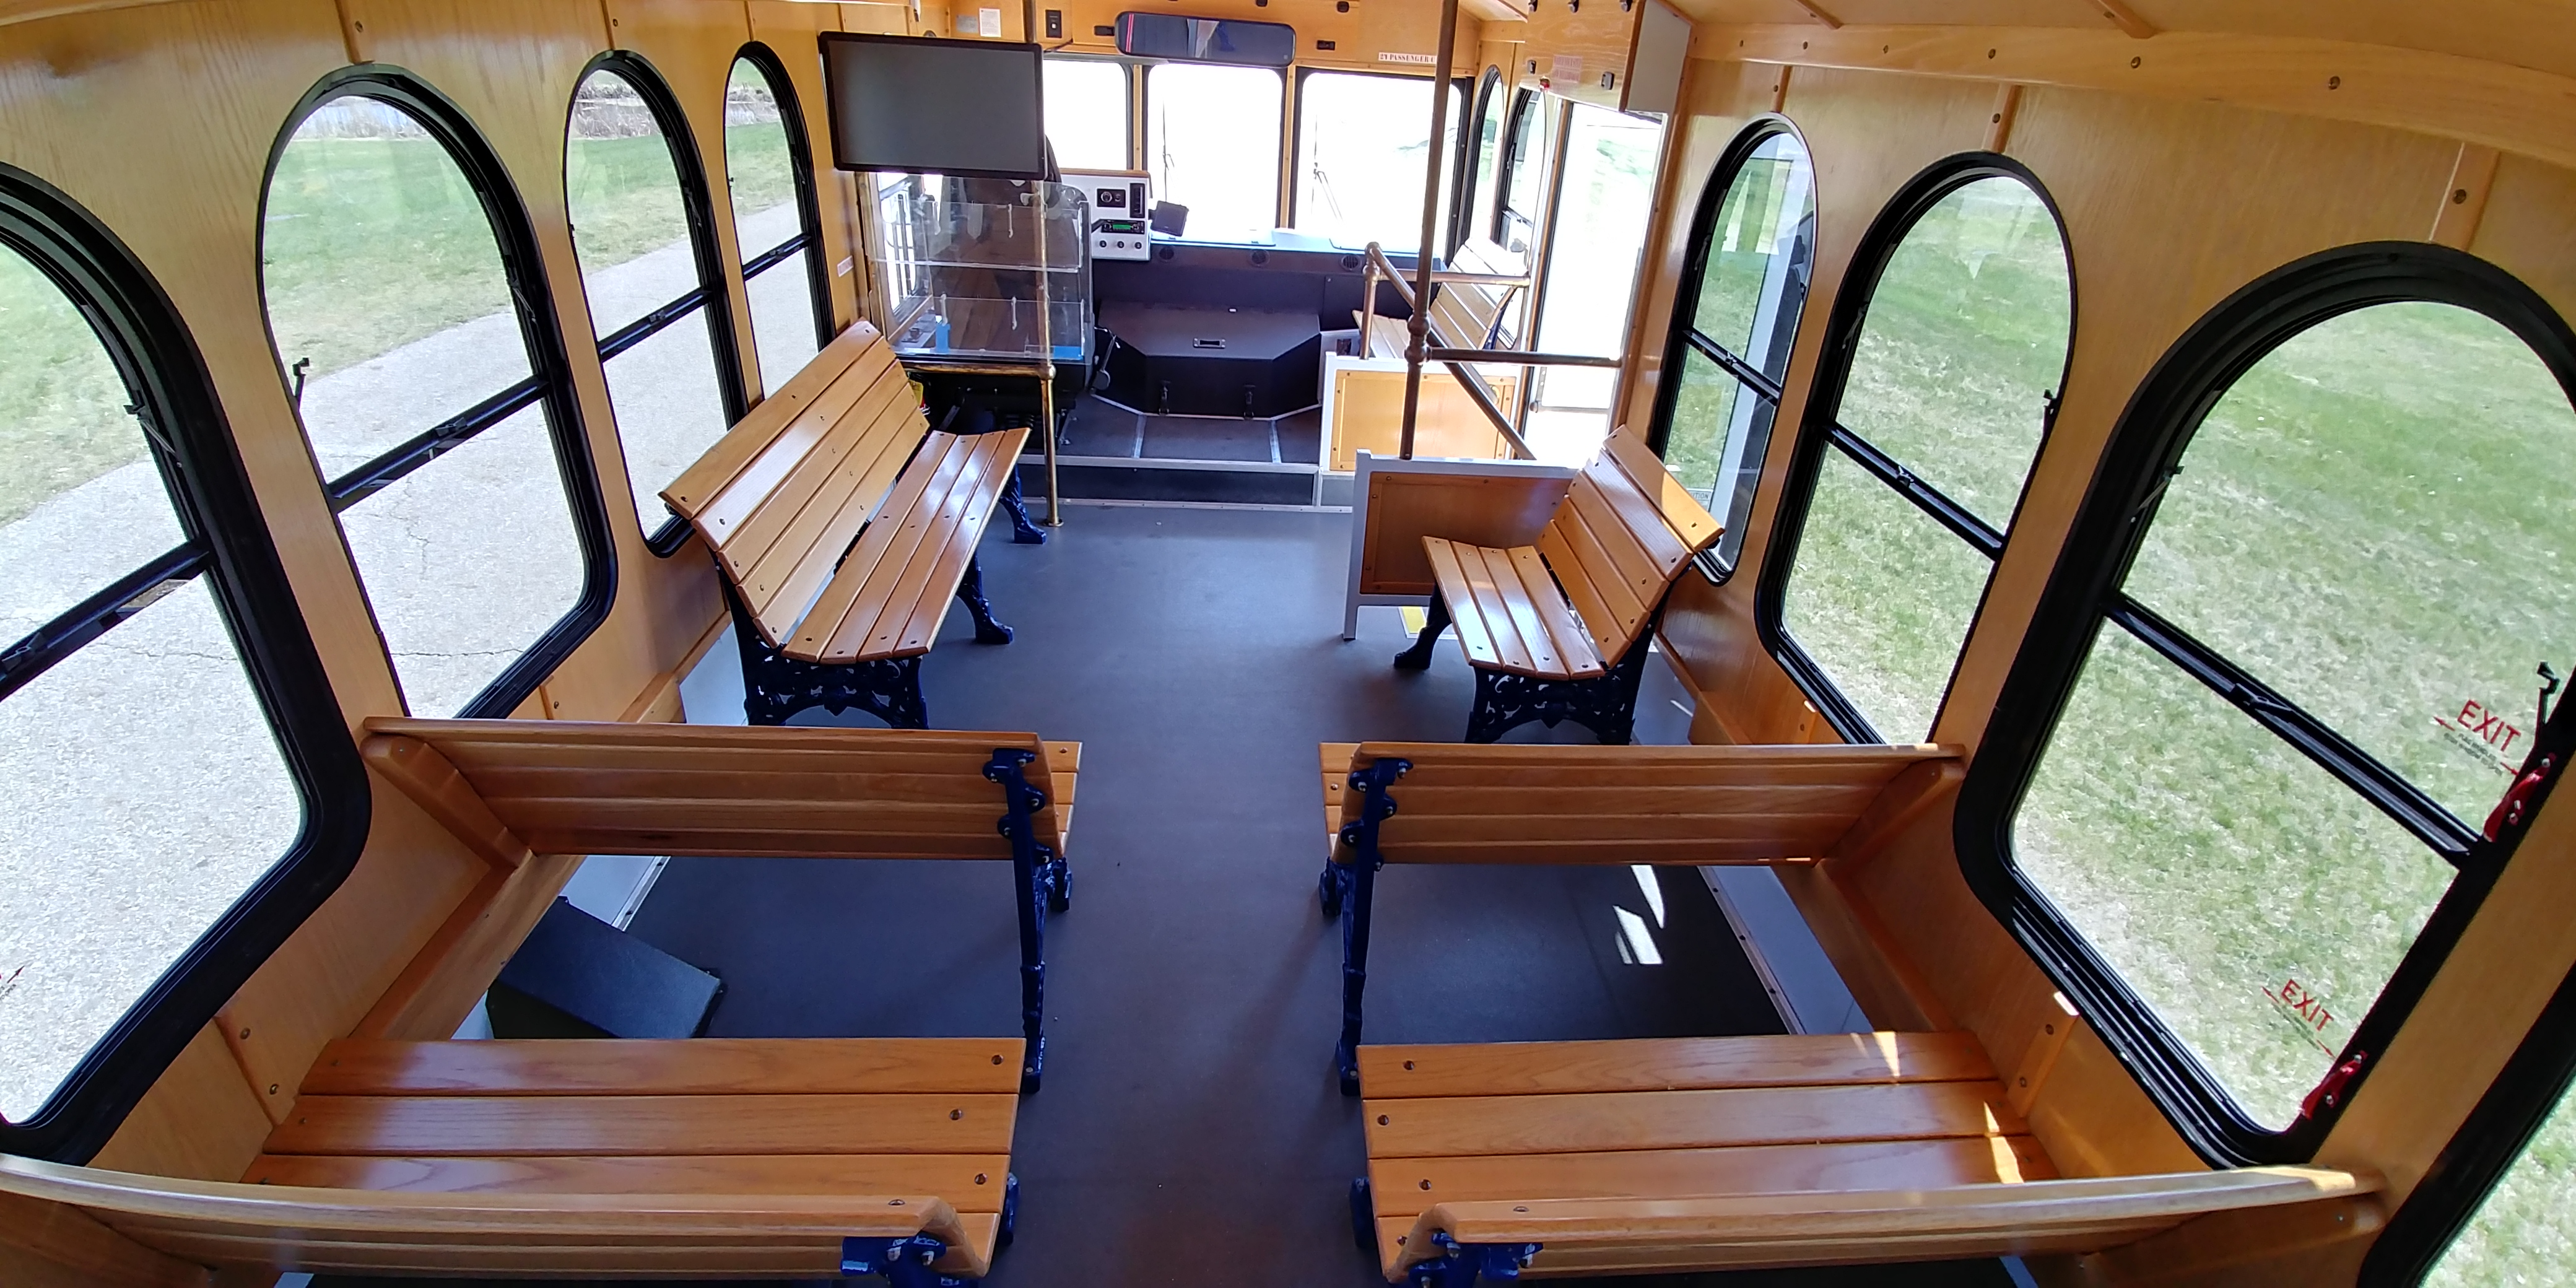 24 Passenger Trolley Interior 5